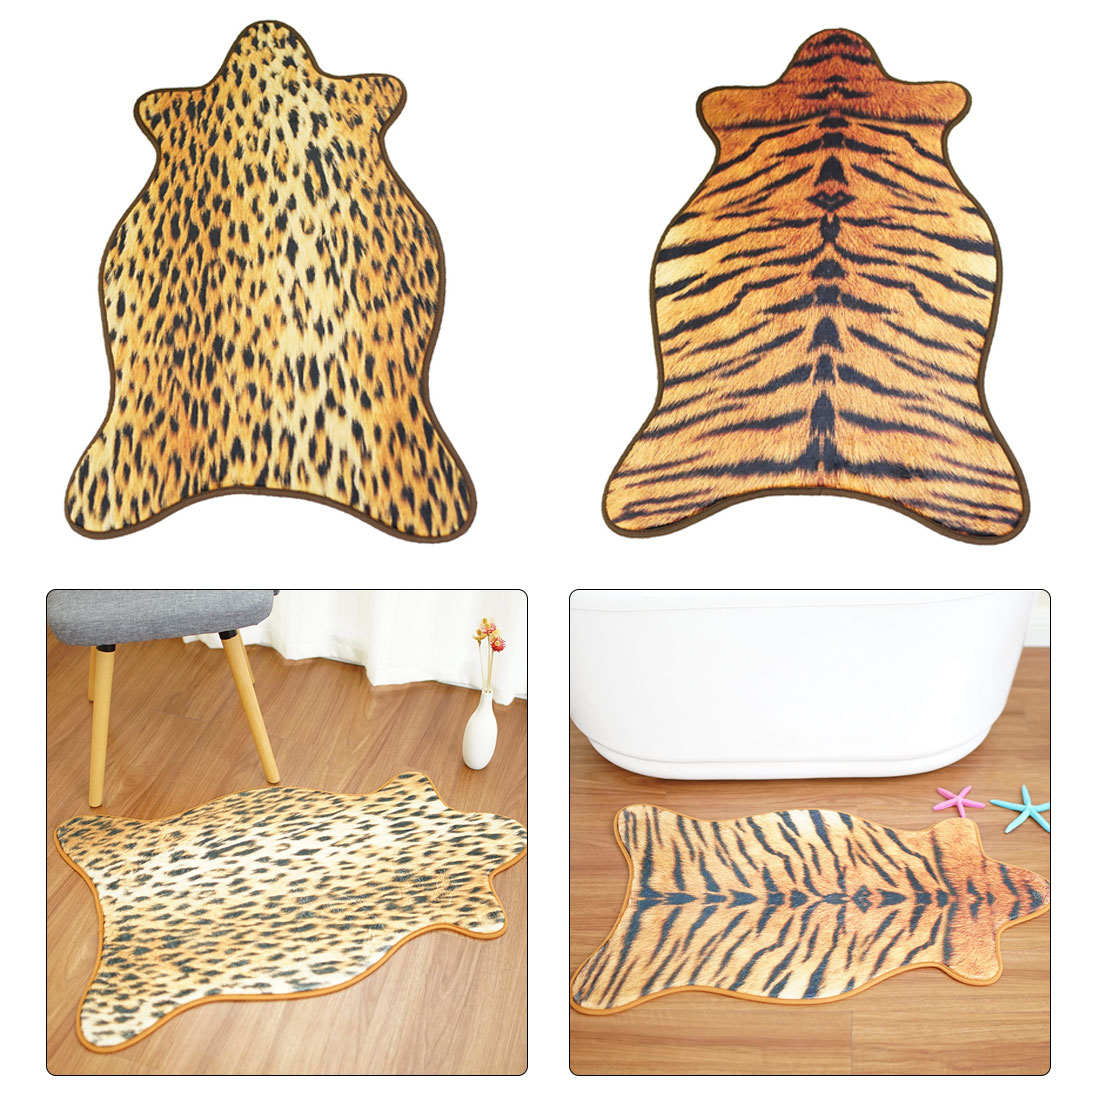 55x90cm Cow Leopard Tiger Carpet Imitation Animal Skins Natural Shape Rugs Living Room Bedroom Decoration Non-slip Floor Mats